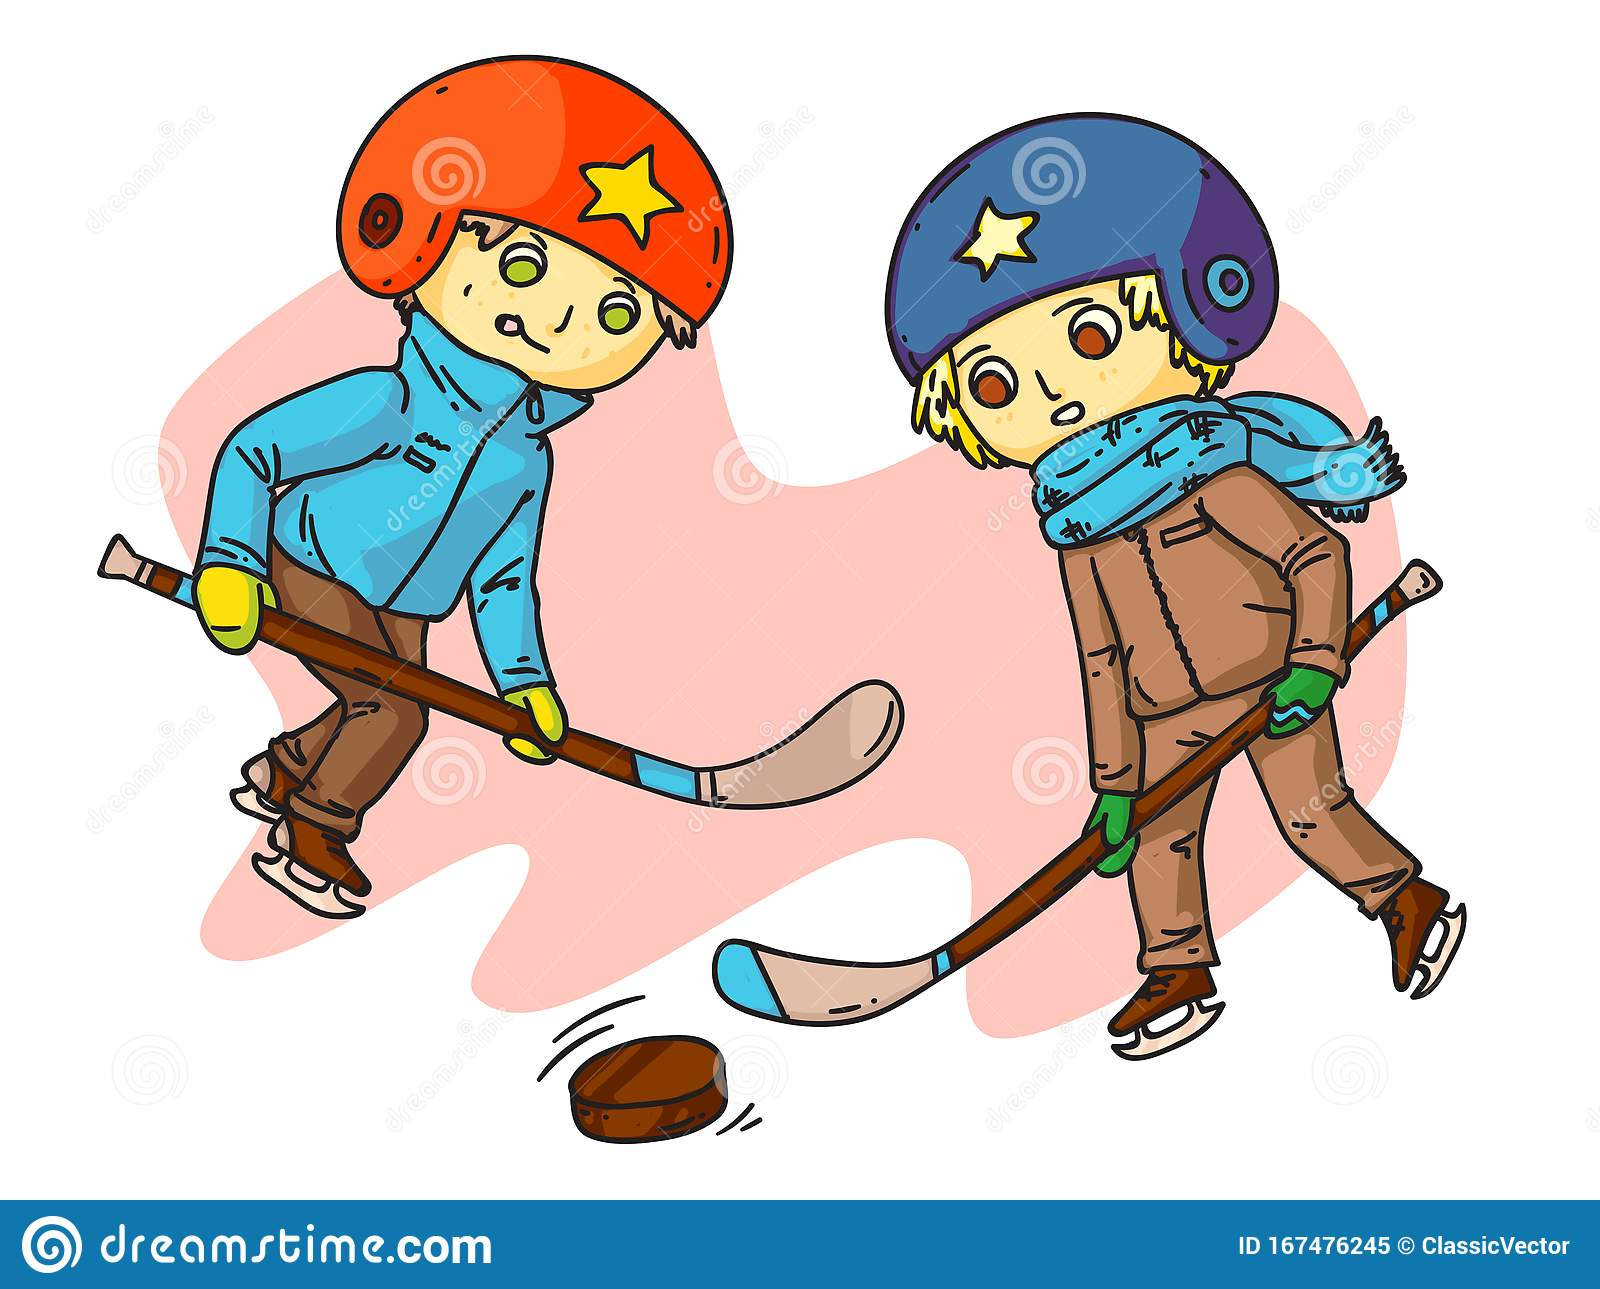 Kids Hockey Players Flat Vector Illustration Stock Vector Illustration Of Competitive Design 167476245